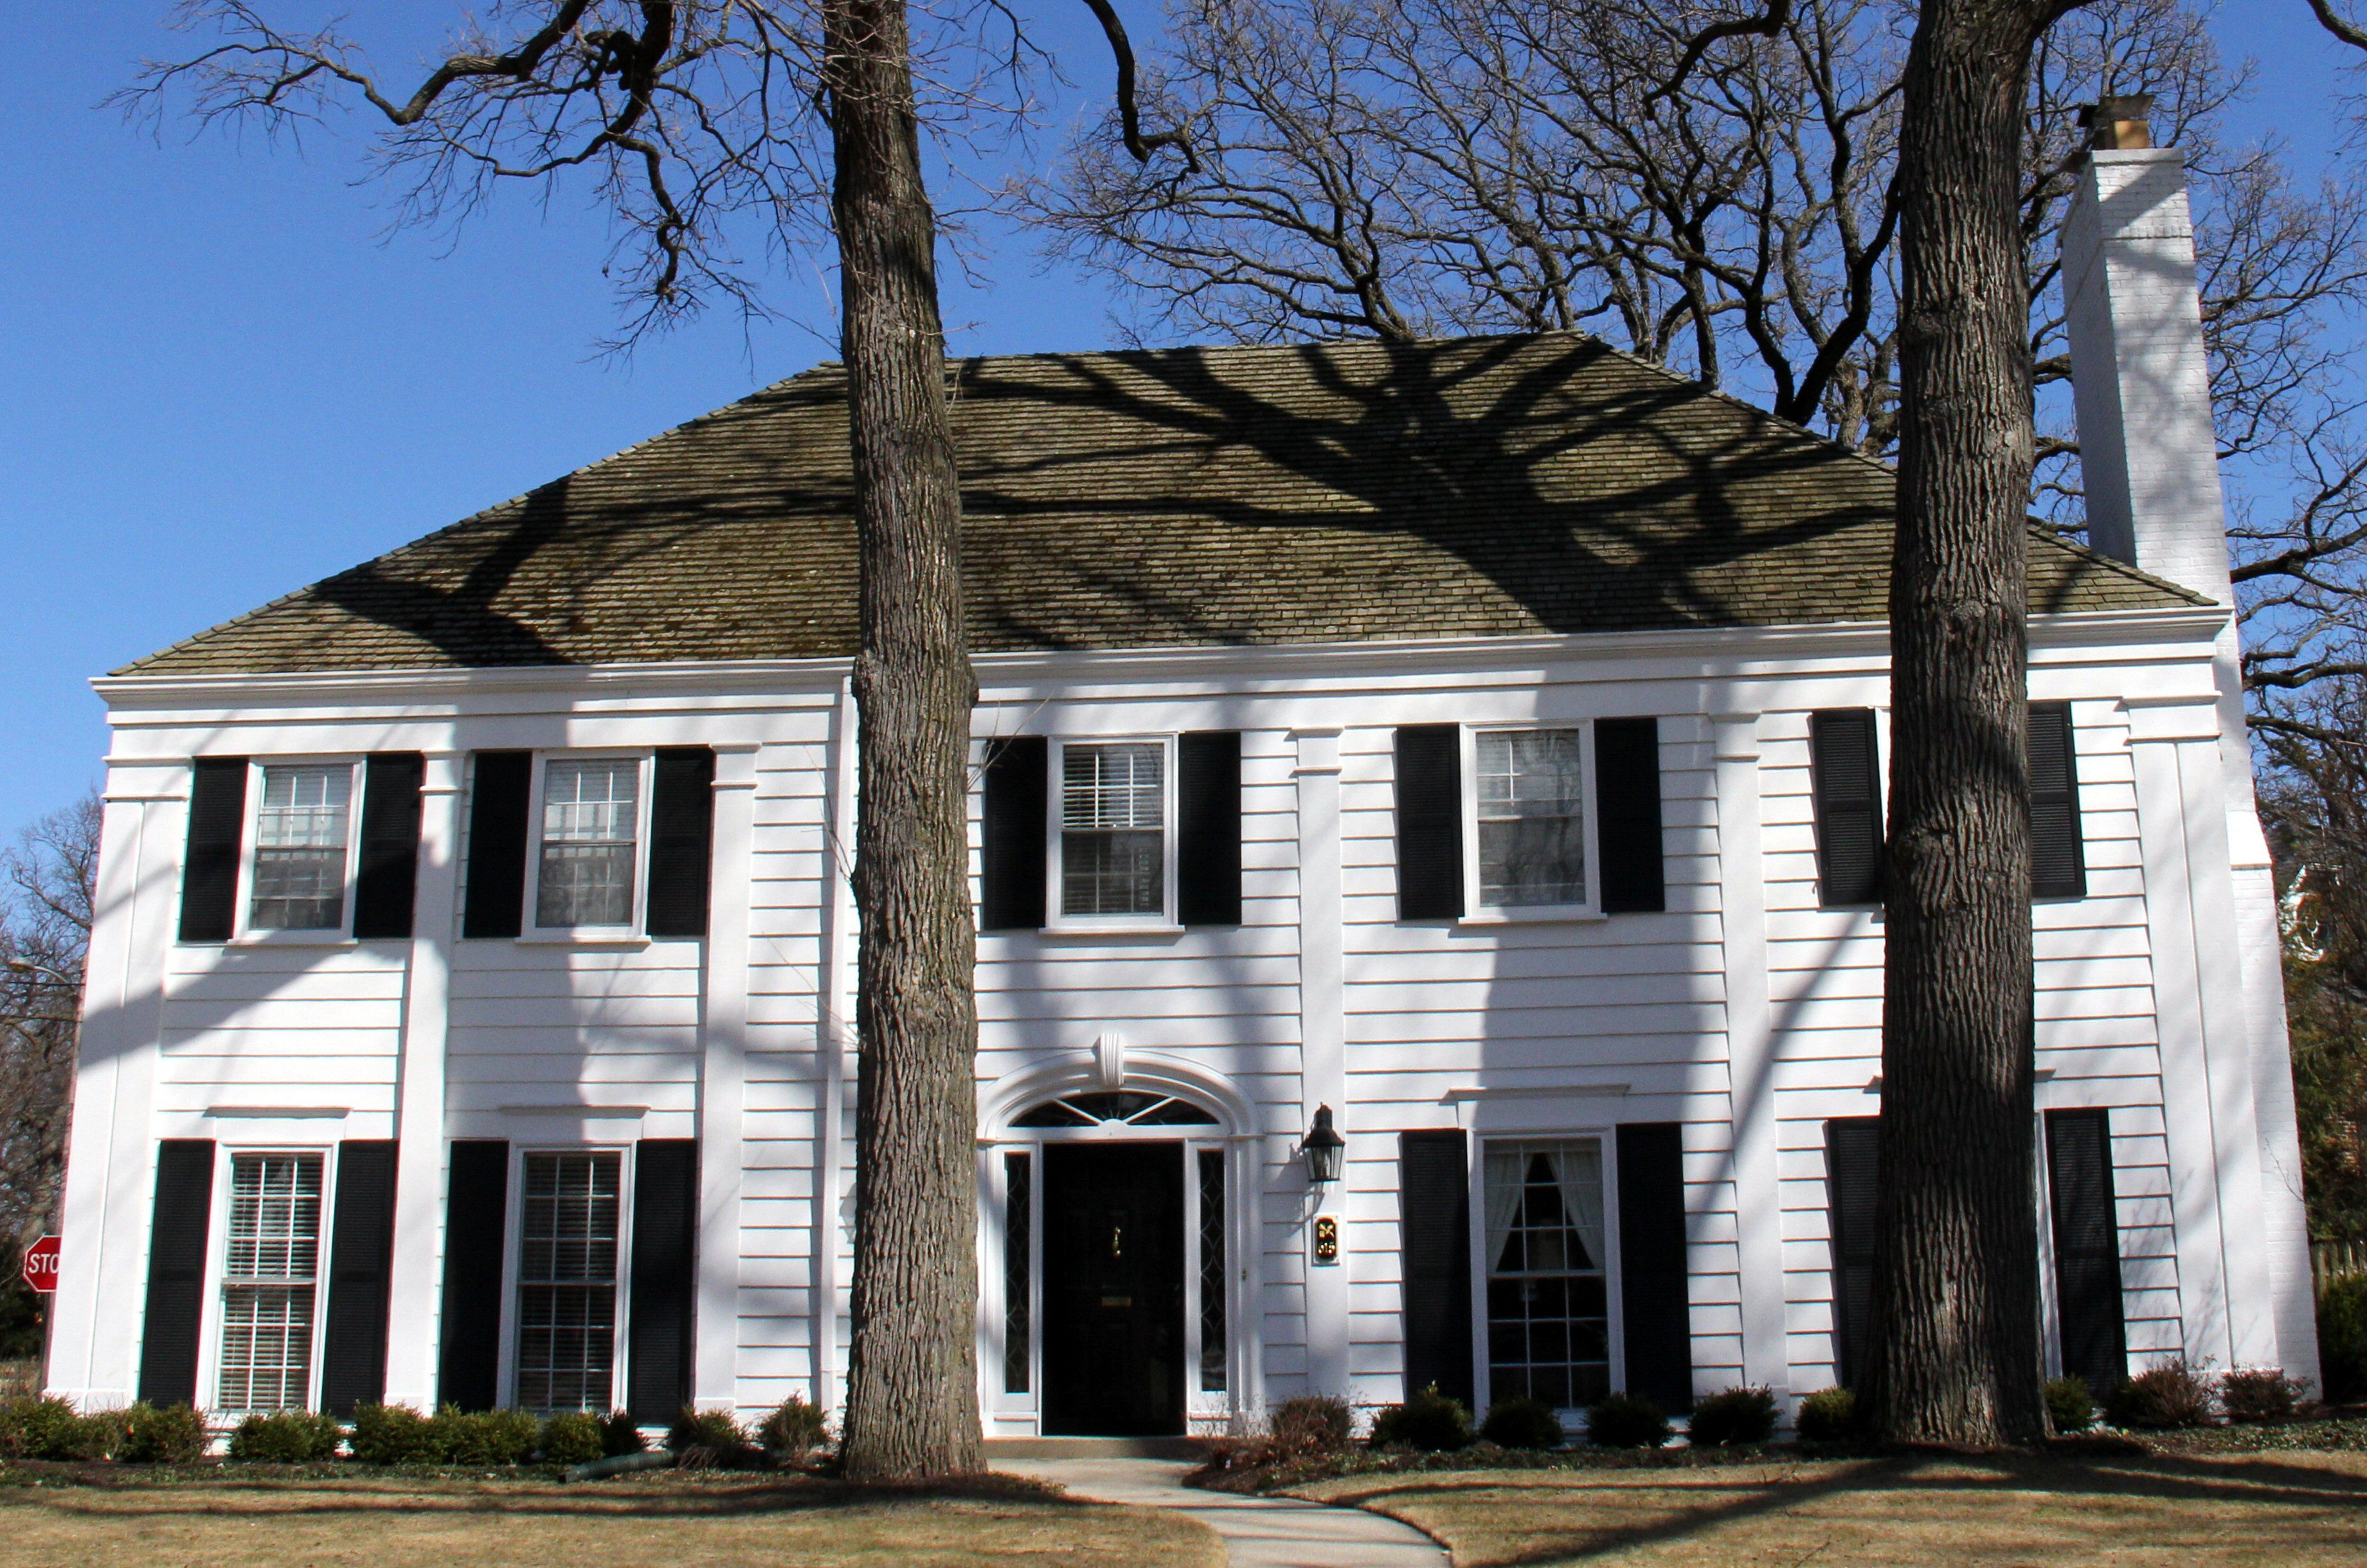 front of white house with hipped roof, black shutters, white chimney on right side, center front door, four evenly spaced pilasters across the facade reaching to corner pilasters on each end